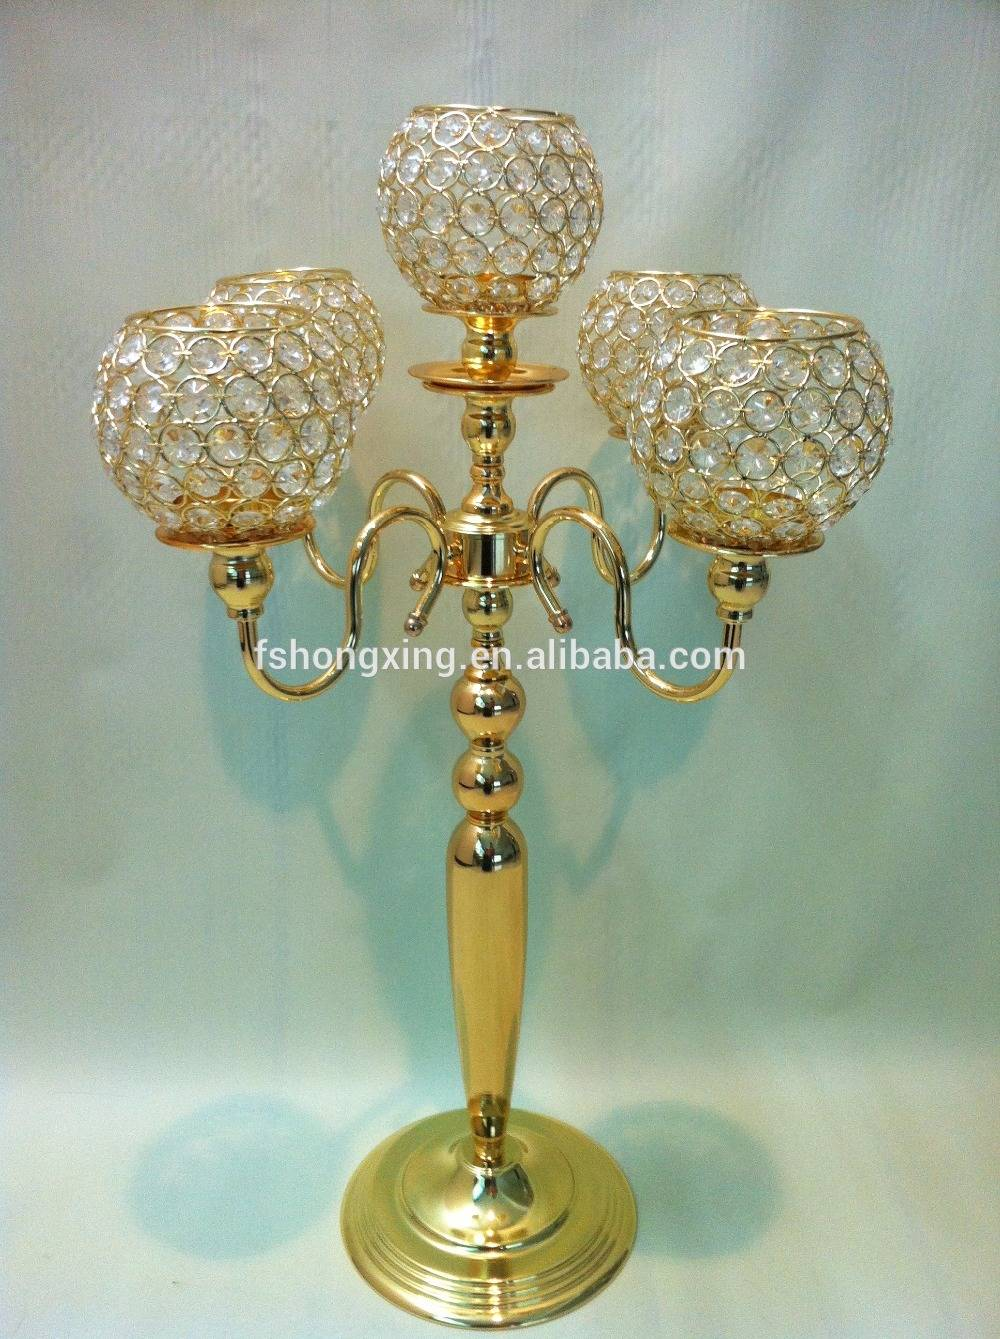 High quality Desktop decoration for table top wedding candelabra flower bowl centerpieces